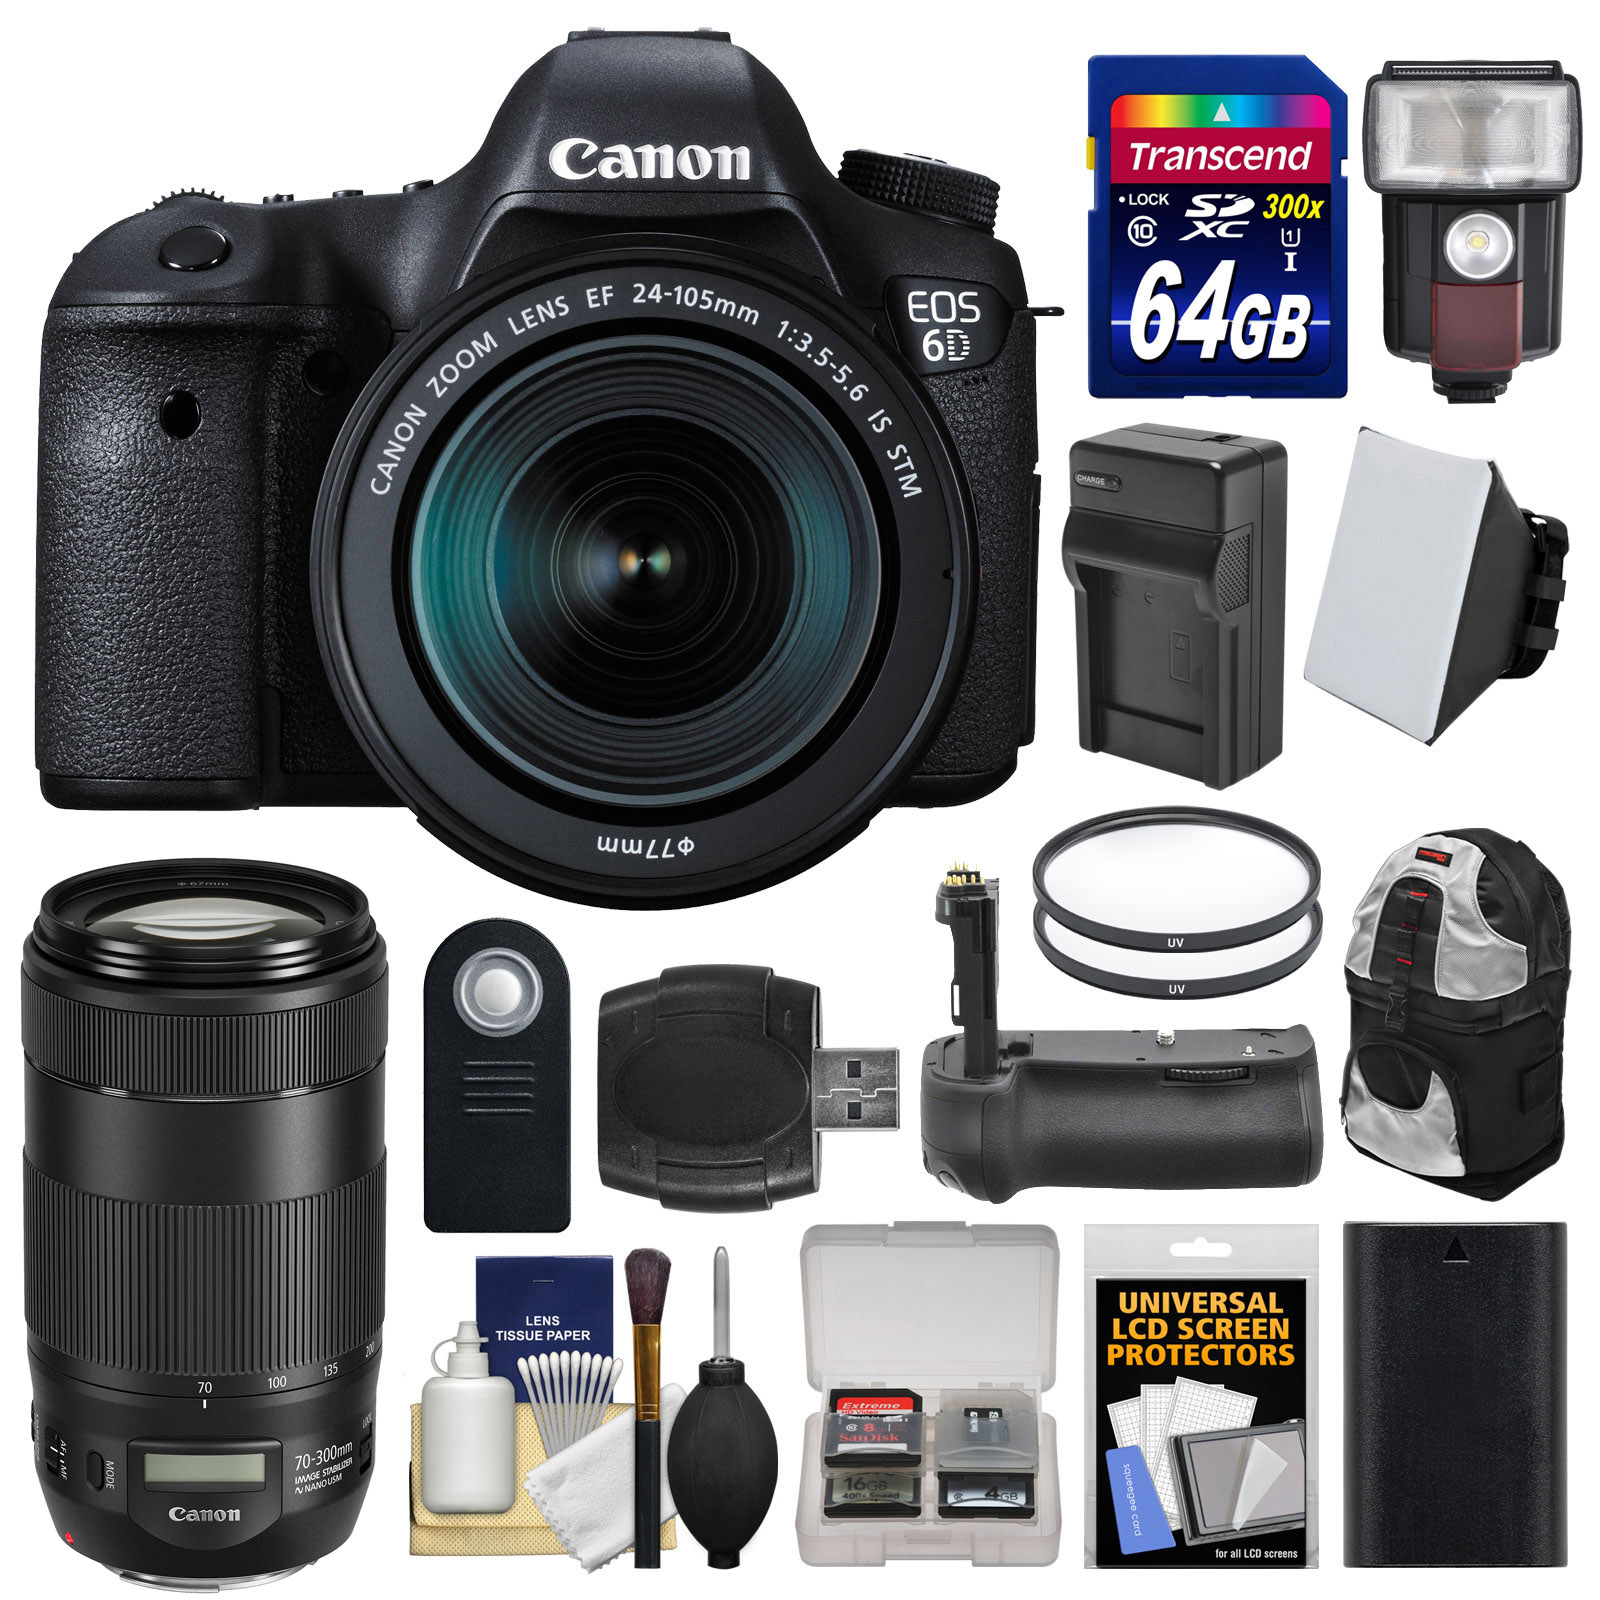 Canon EOS 6D Digital SLR Camera Body + EF 24-105mm IS STM & 70-300mm IS II USM Lens + 64GB Card + Backpack + Flash +... by Canon